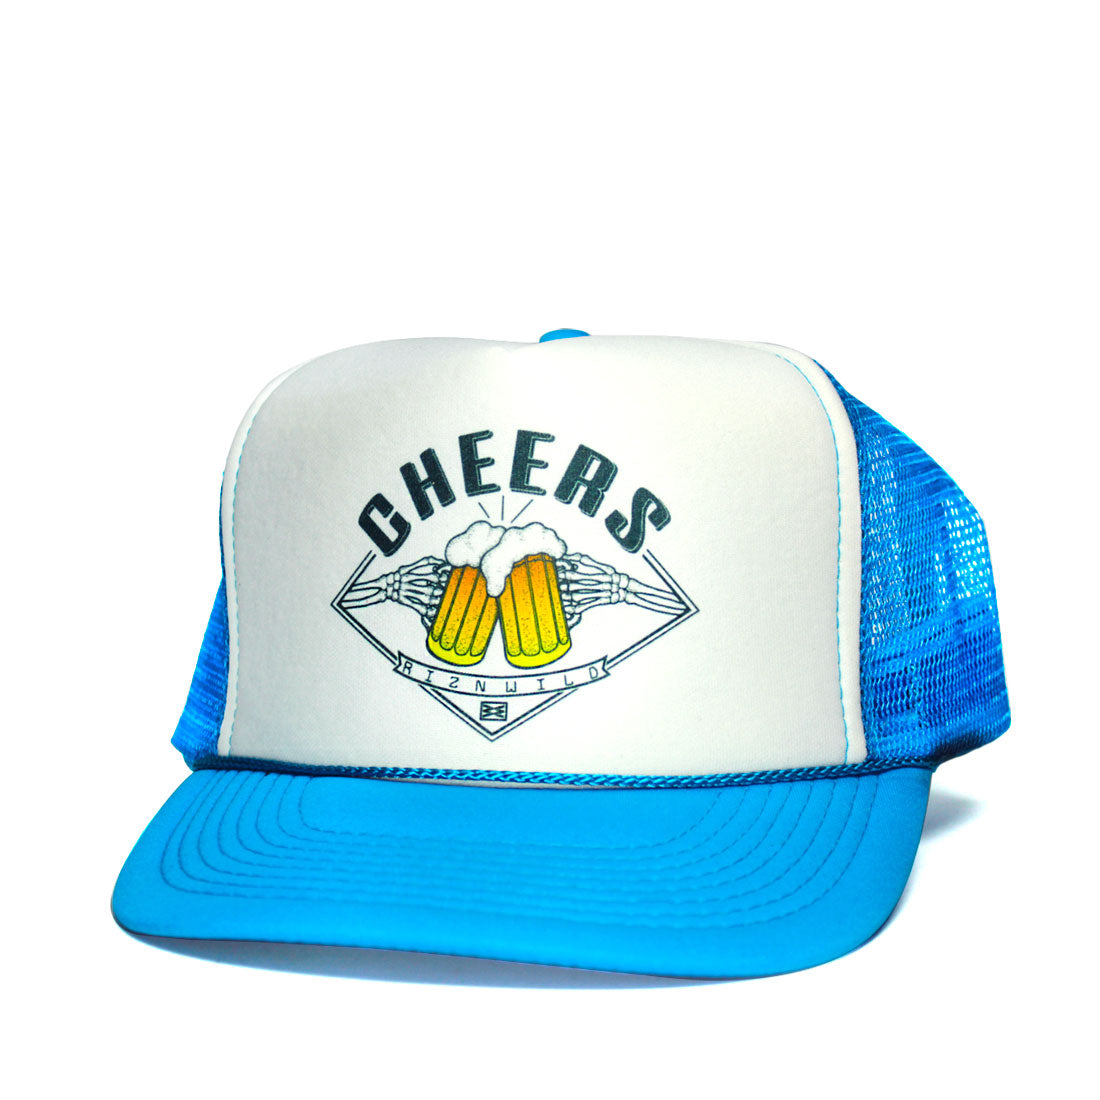 Cheers beer clinging trucker hat blue and white | RIZNWILD